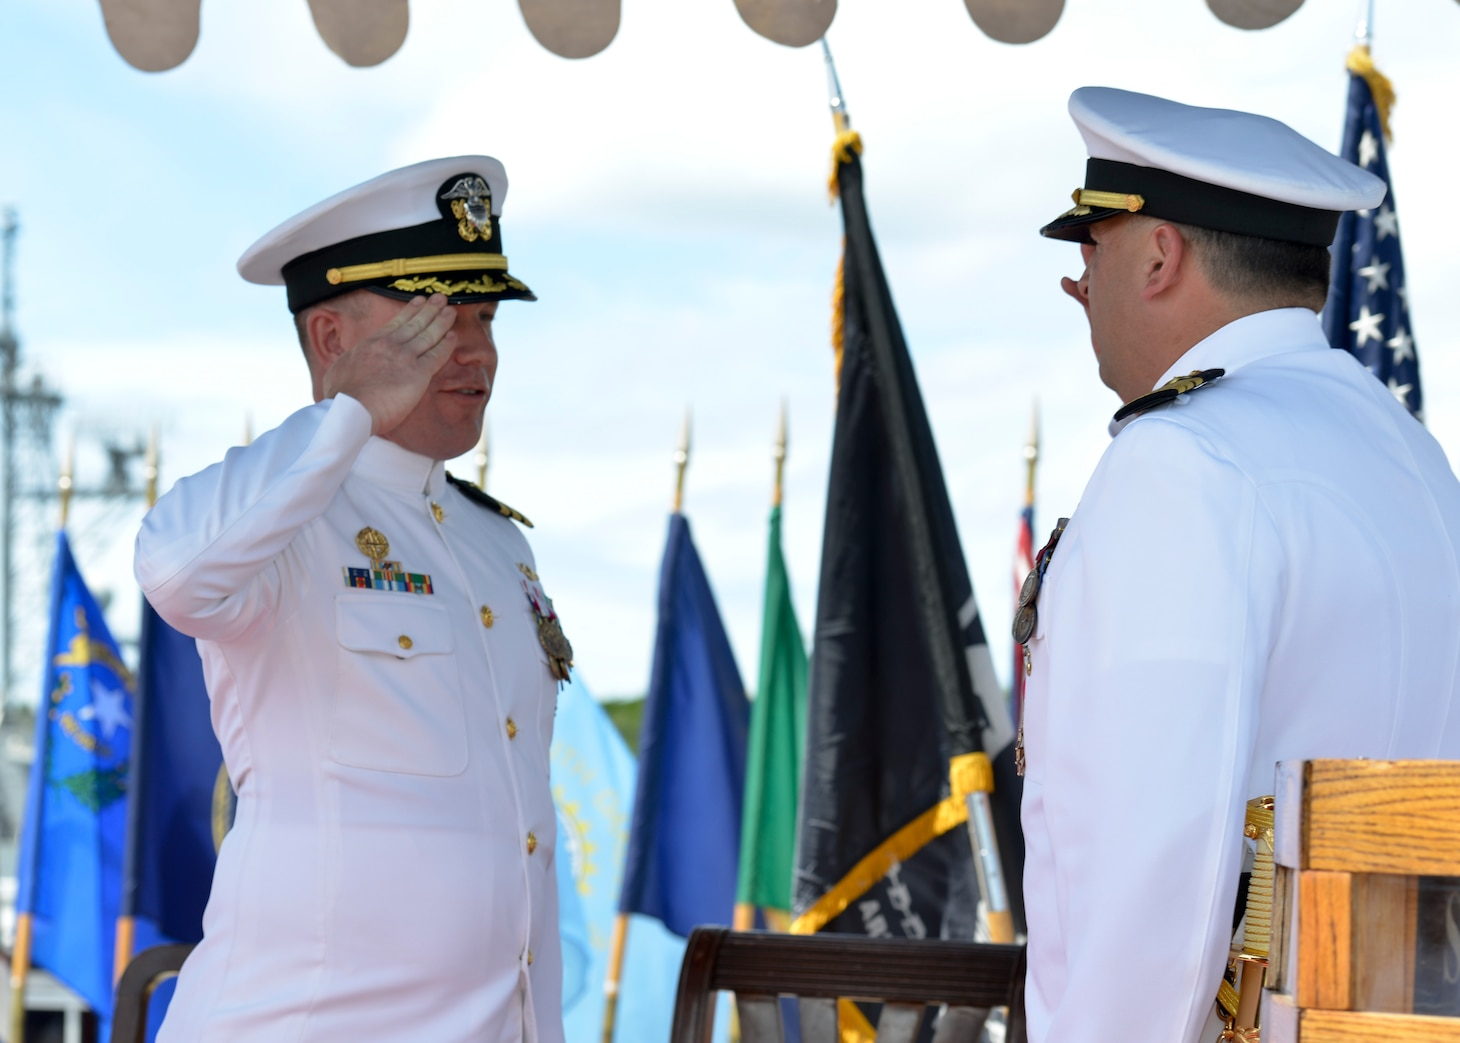 JOINT BASE PEARL HARBOR-HICKAM, Hawaii (May 18, 2016) Commander Michael D. Eberlein, left, relieves Cmdr. Lawrence D. Ollice, right, during the Naval Submarine Support Command (NSSC) Pearl Harbor change-of-command ceremony in Joint Base Pearl Harbor-Hickam.  NSSC provides quality operational support for Pearl Harbor homeported submarines, their crews, families, and the staffs of Submarine Squadrons 1 and 7. (U.S. Navy photo by Mass Communication Specialist 2nd Class Michael H. Lee)